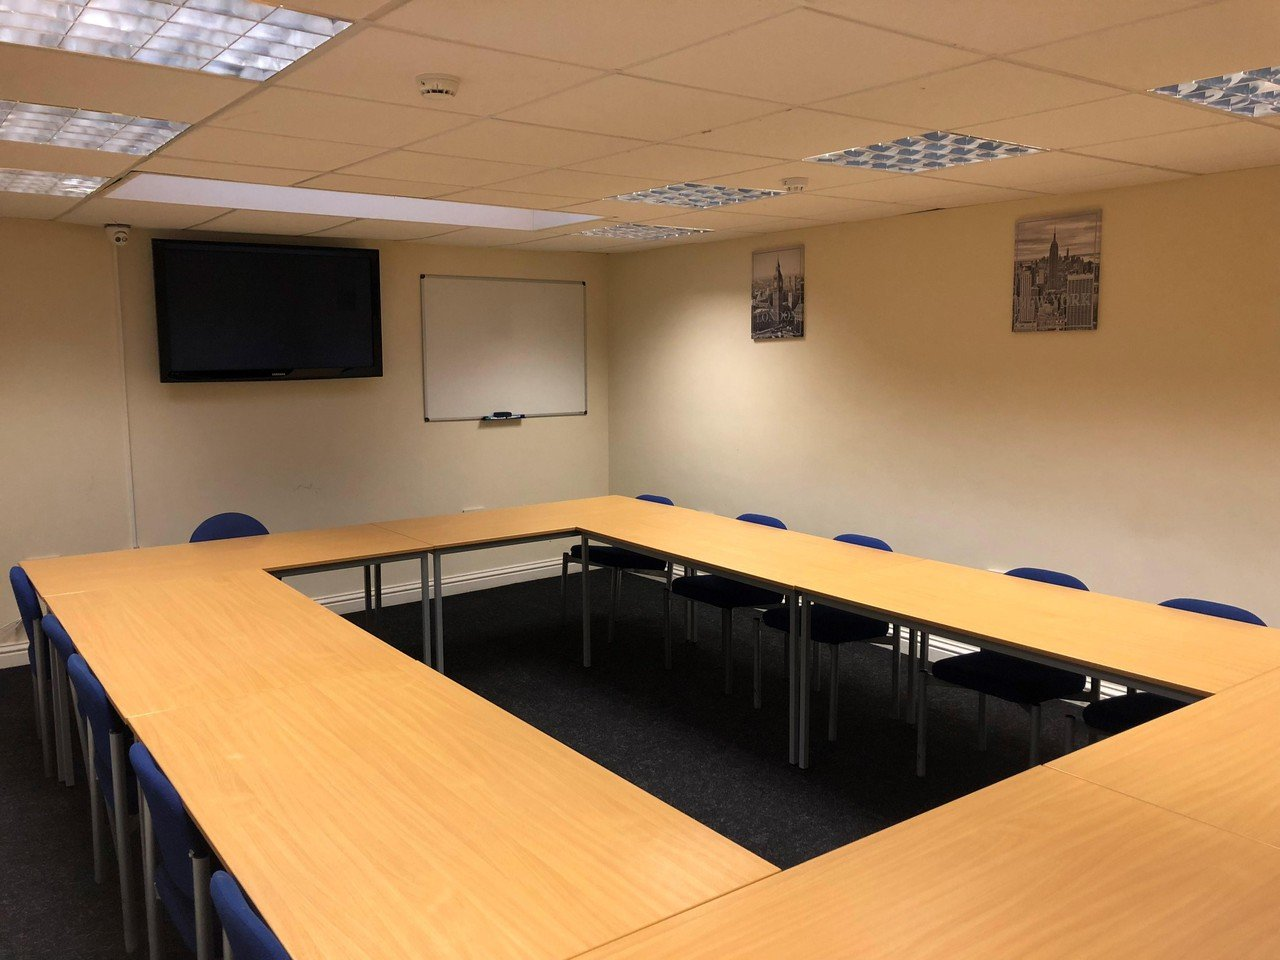 Greenhithe training rooms Salle de réunion Training for Security Limited - Kaieteur Room Boardroom image 0